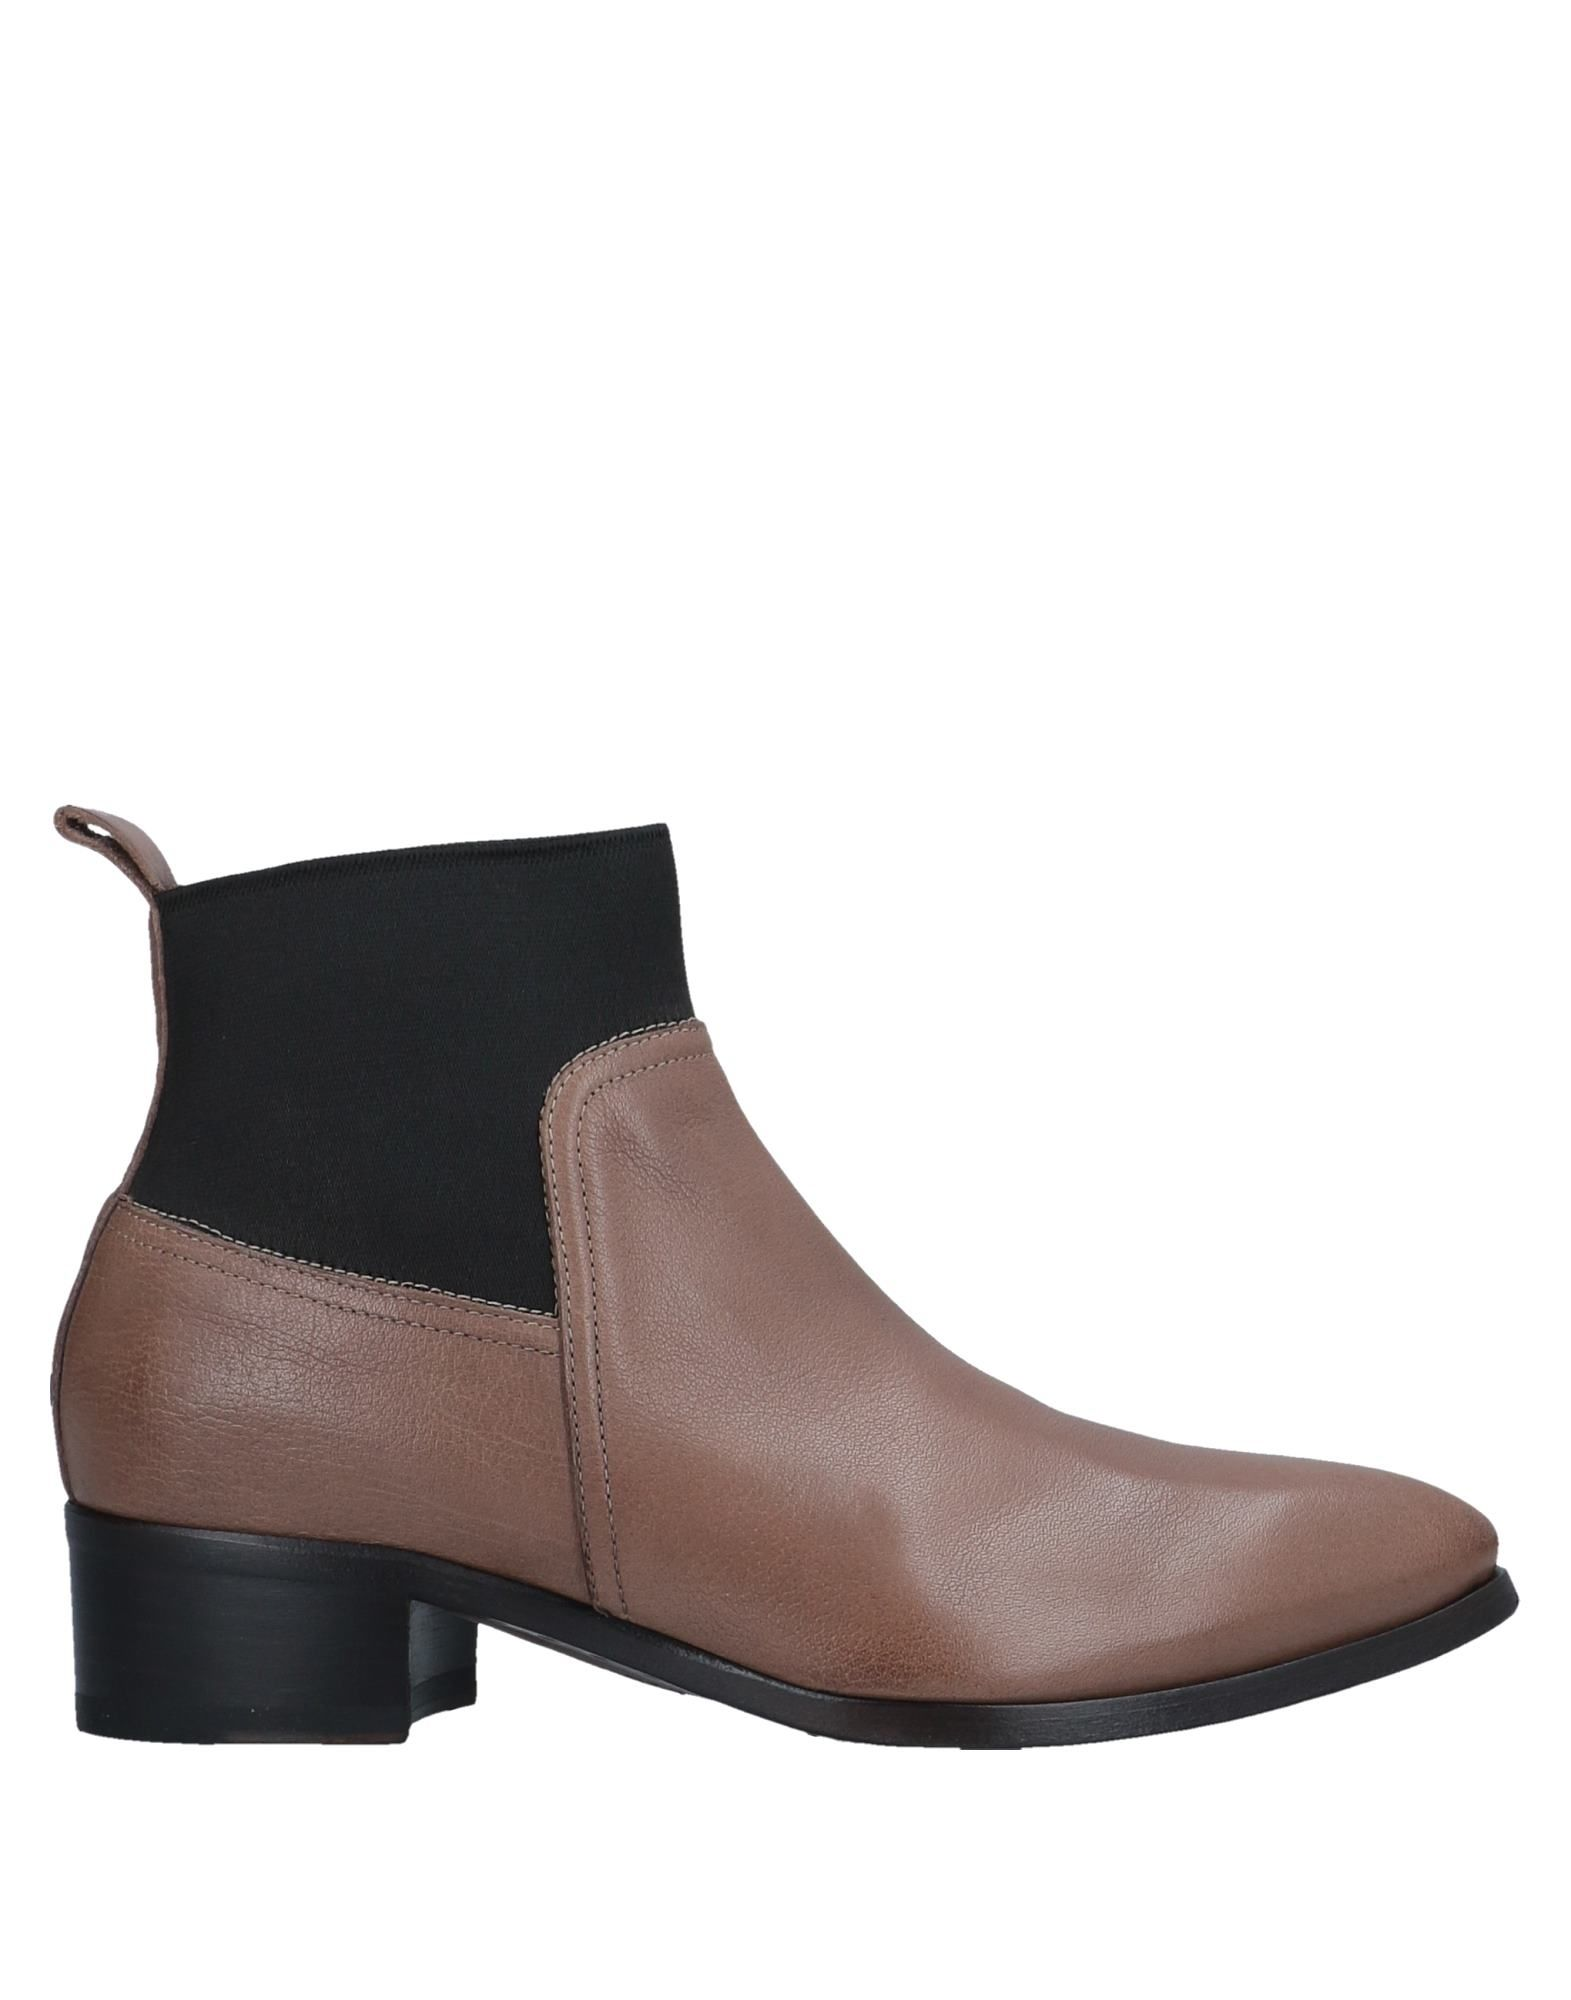 Buttero® Ankle Boot Boots - Women Buttero® Ankle Boots Boot online on  Australia - 11191465UK 25c994